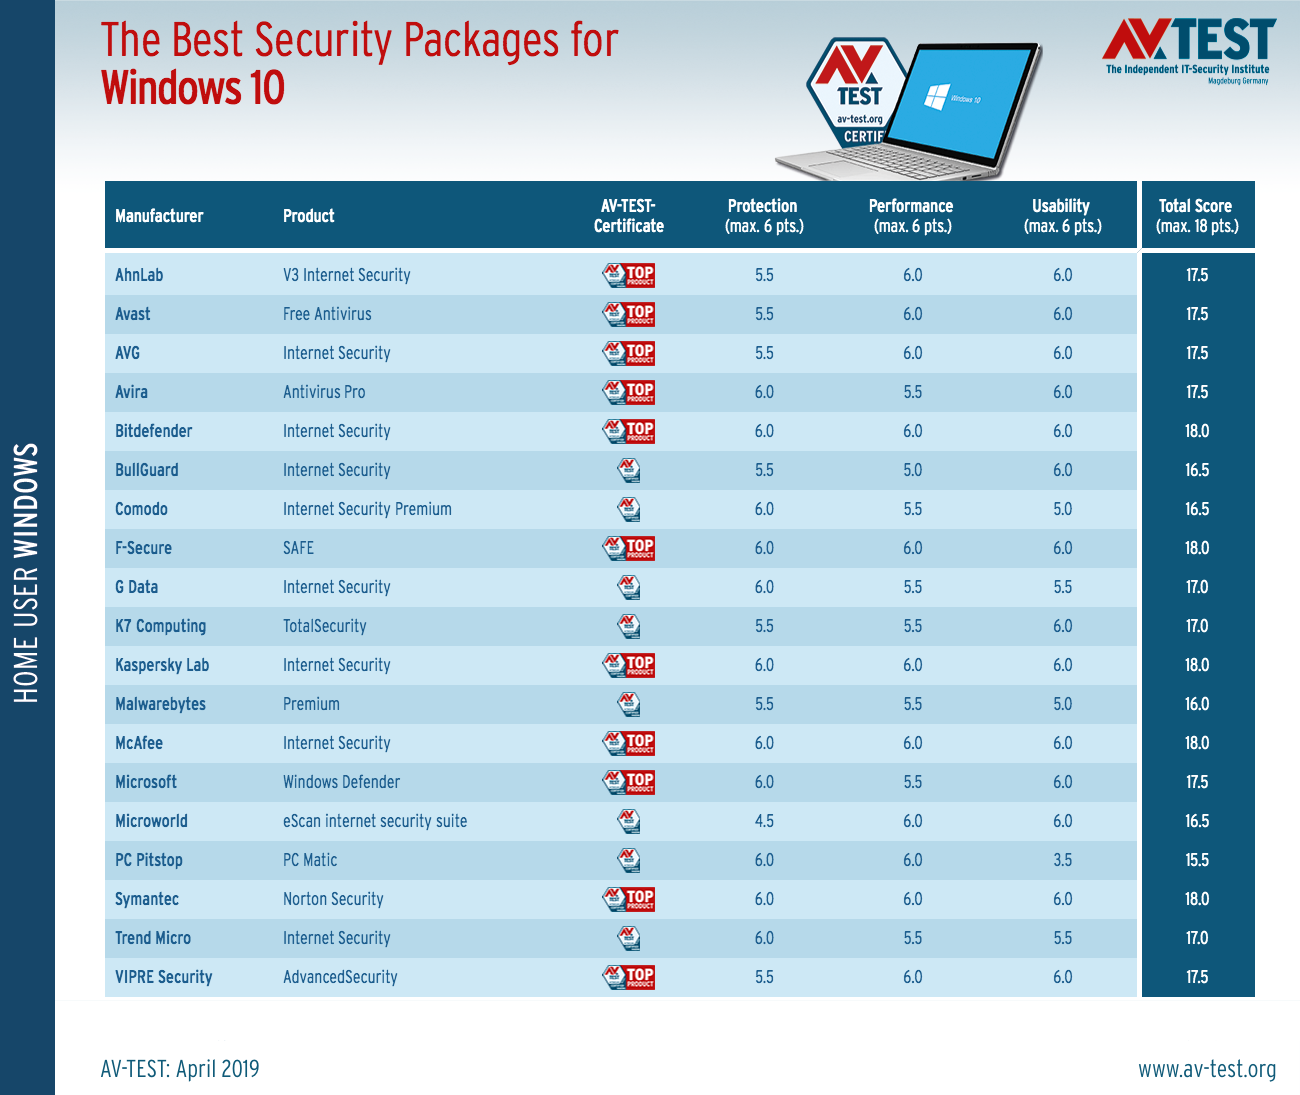 The best security packages for windows 10